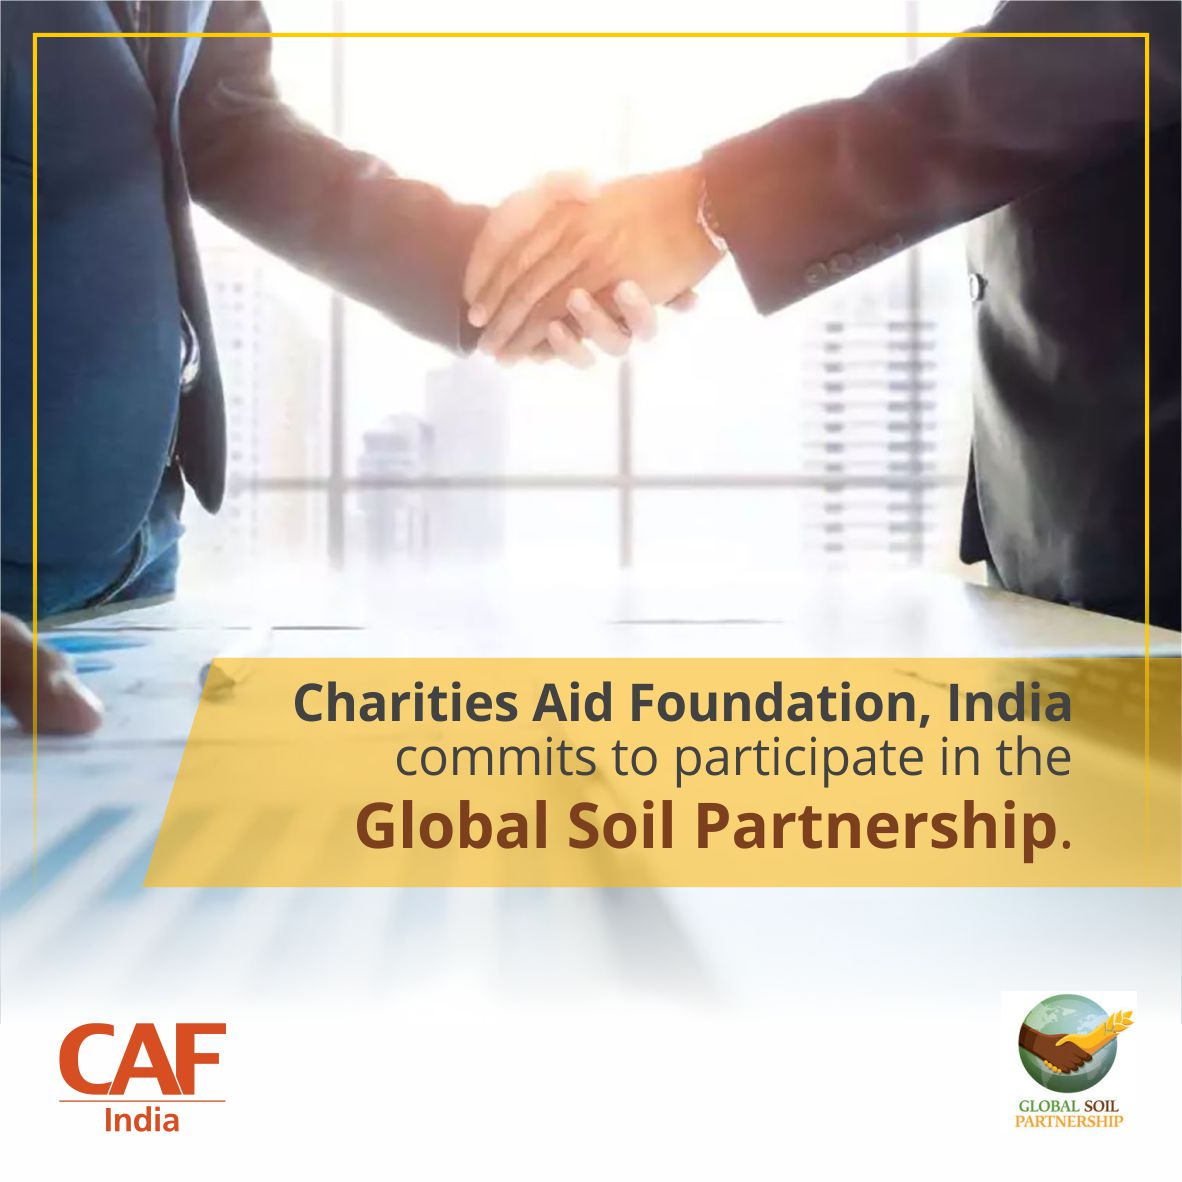 Soil is an essential resource & a vital part of the natural environment. It fulfils no. of functions & ecosystem services that bind it to SDG 1, 2, 3, 6, 13 & 15. CAF India is pleased to join the Global Soil Partnership 2 improve #governance & promote #sustainable mgmt of soils.